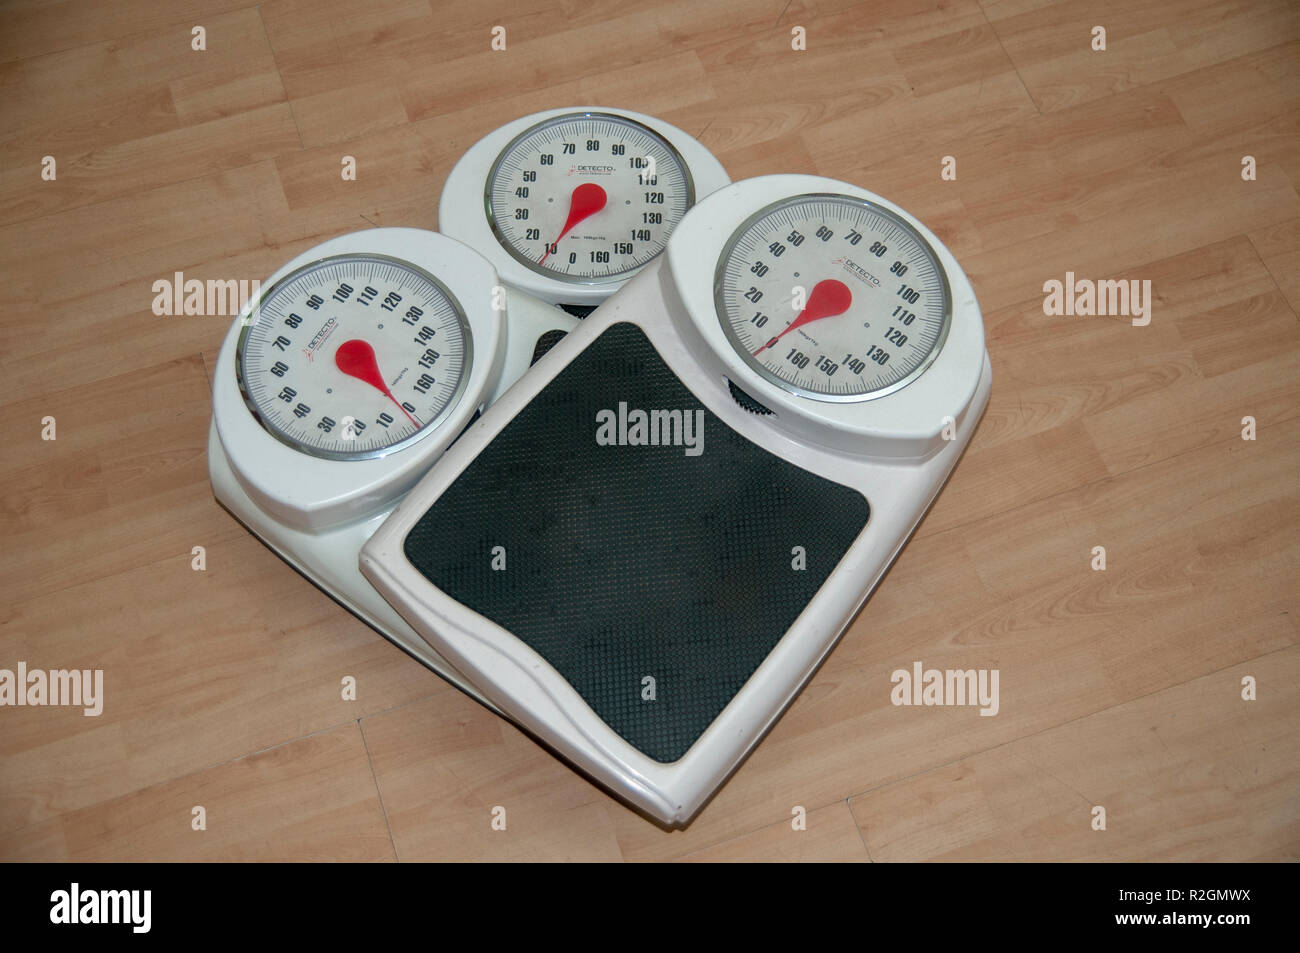 Dieting, weight loss and body image conceptual image of three analogue scales stacked one on top of the other - Stock Image